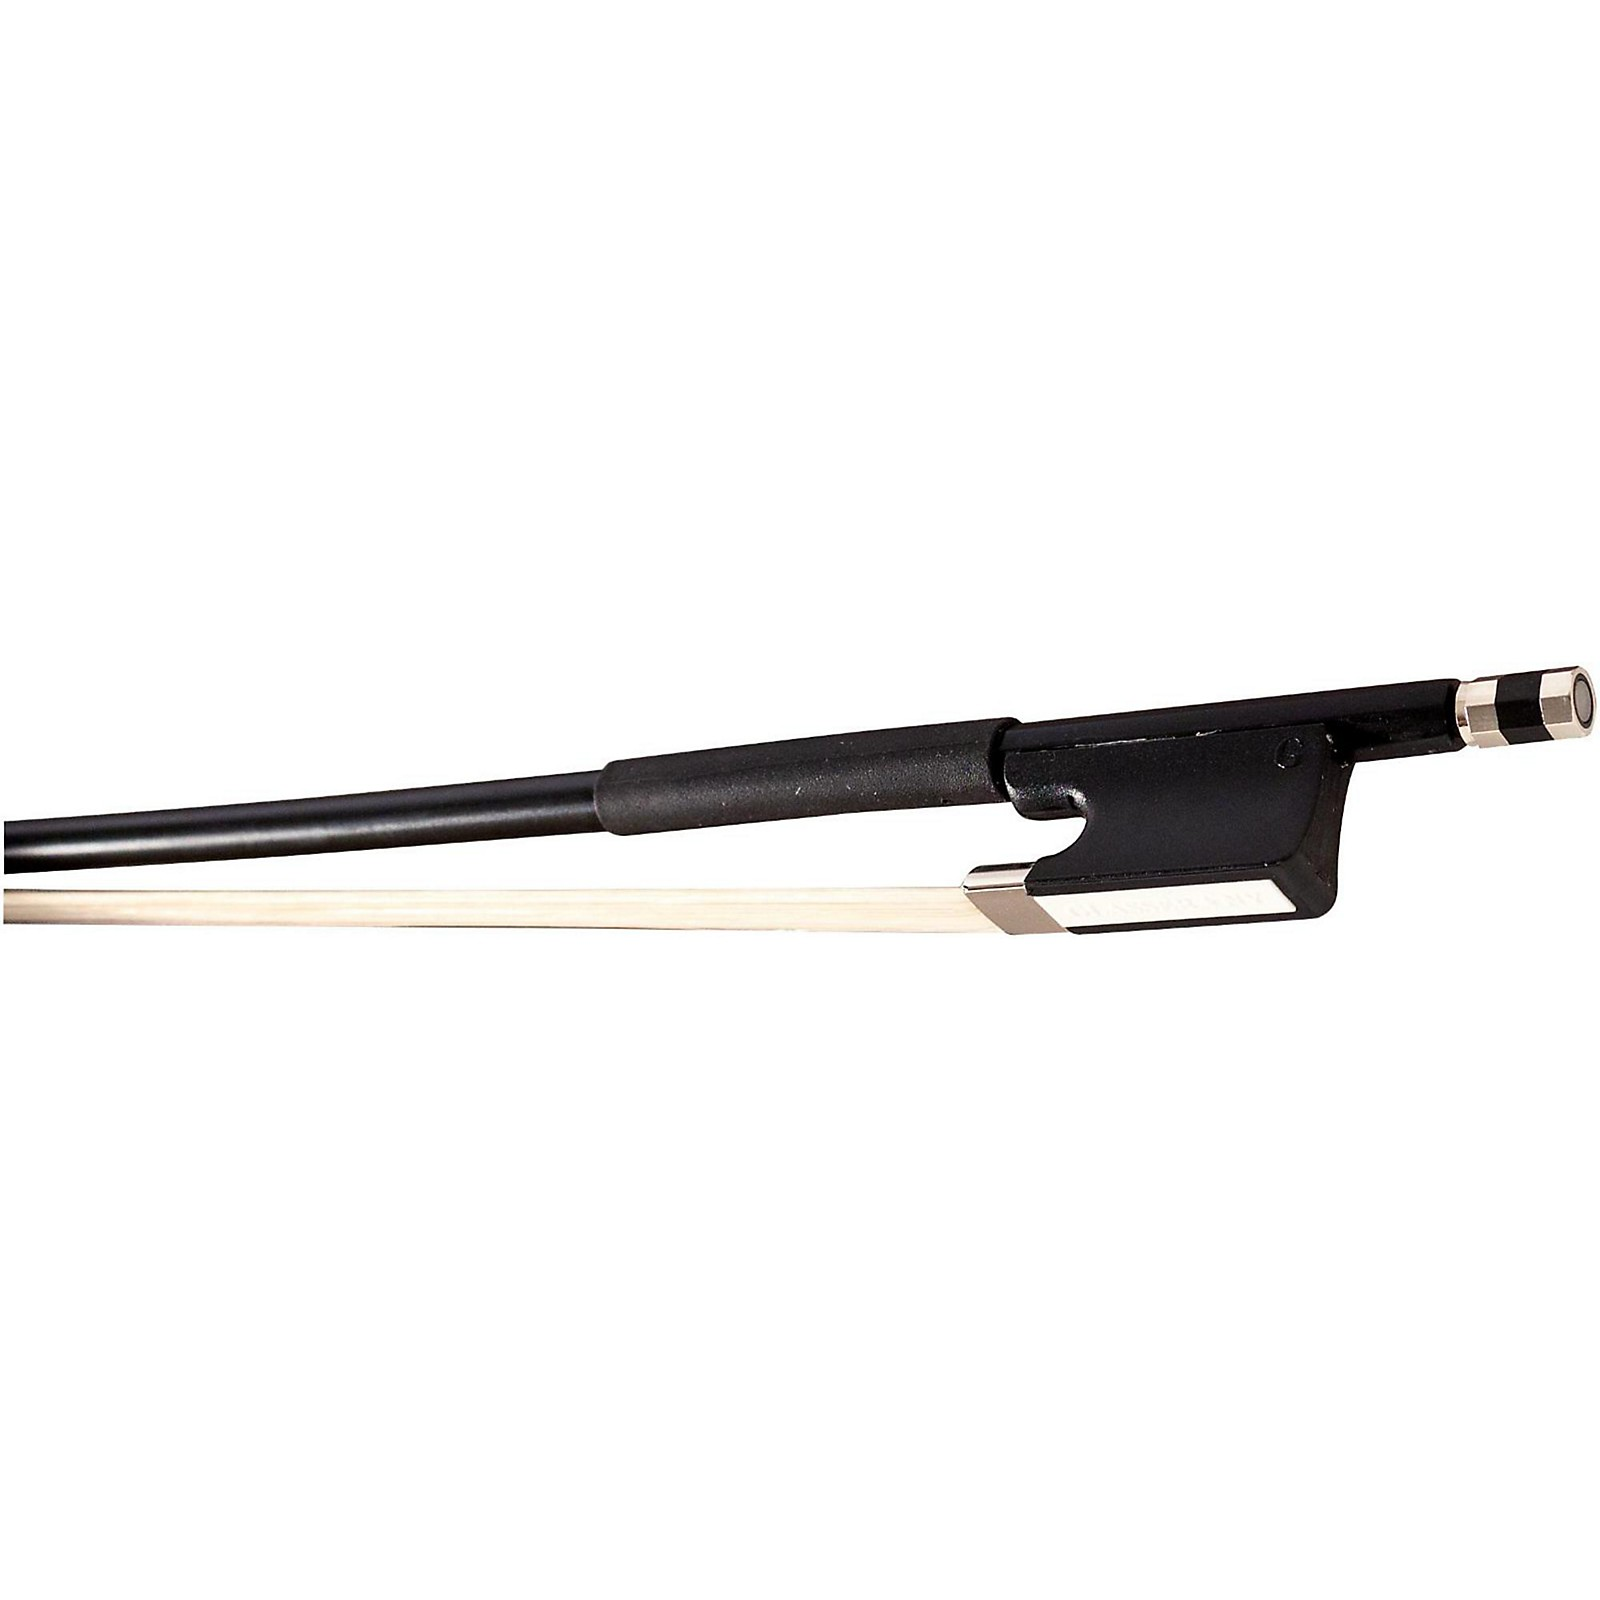 Glasser Cello Bow Fiberglass Half-Lined Frog Leatherette Grip